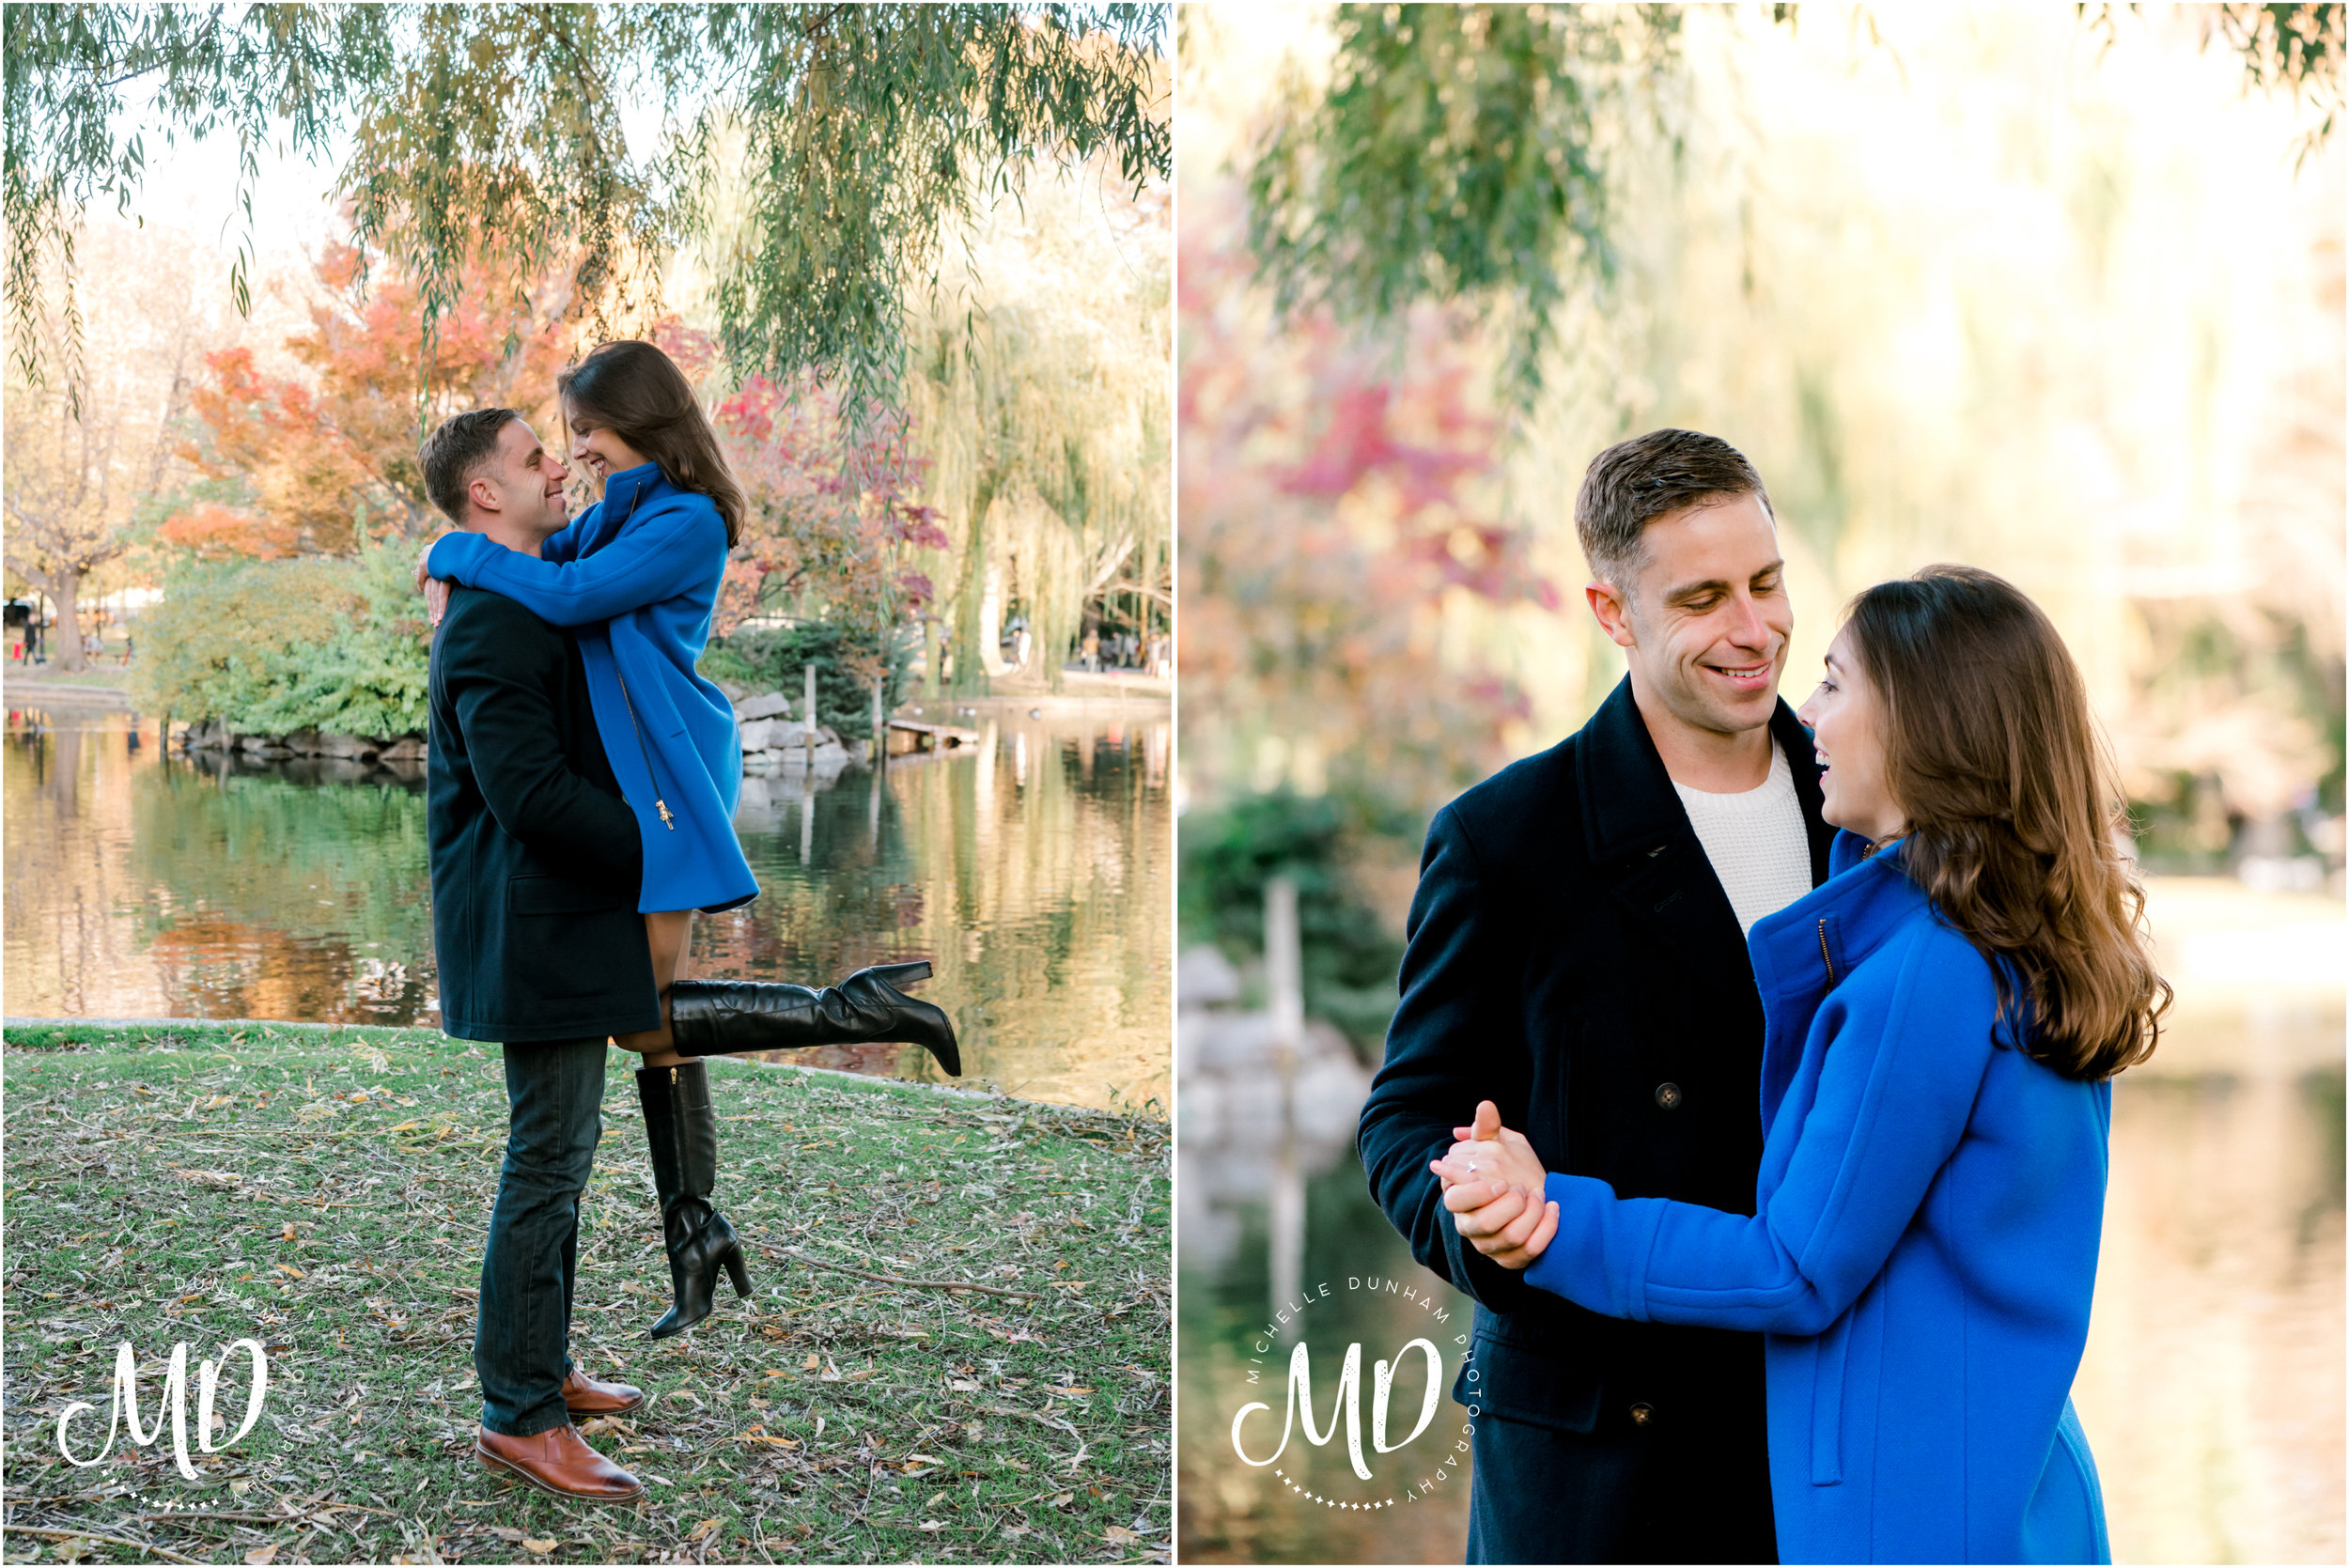 Michelle-Dunham-Photography-Engagement-Public-Garden-Boston-12.jpg